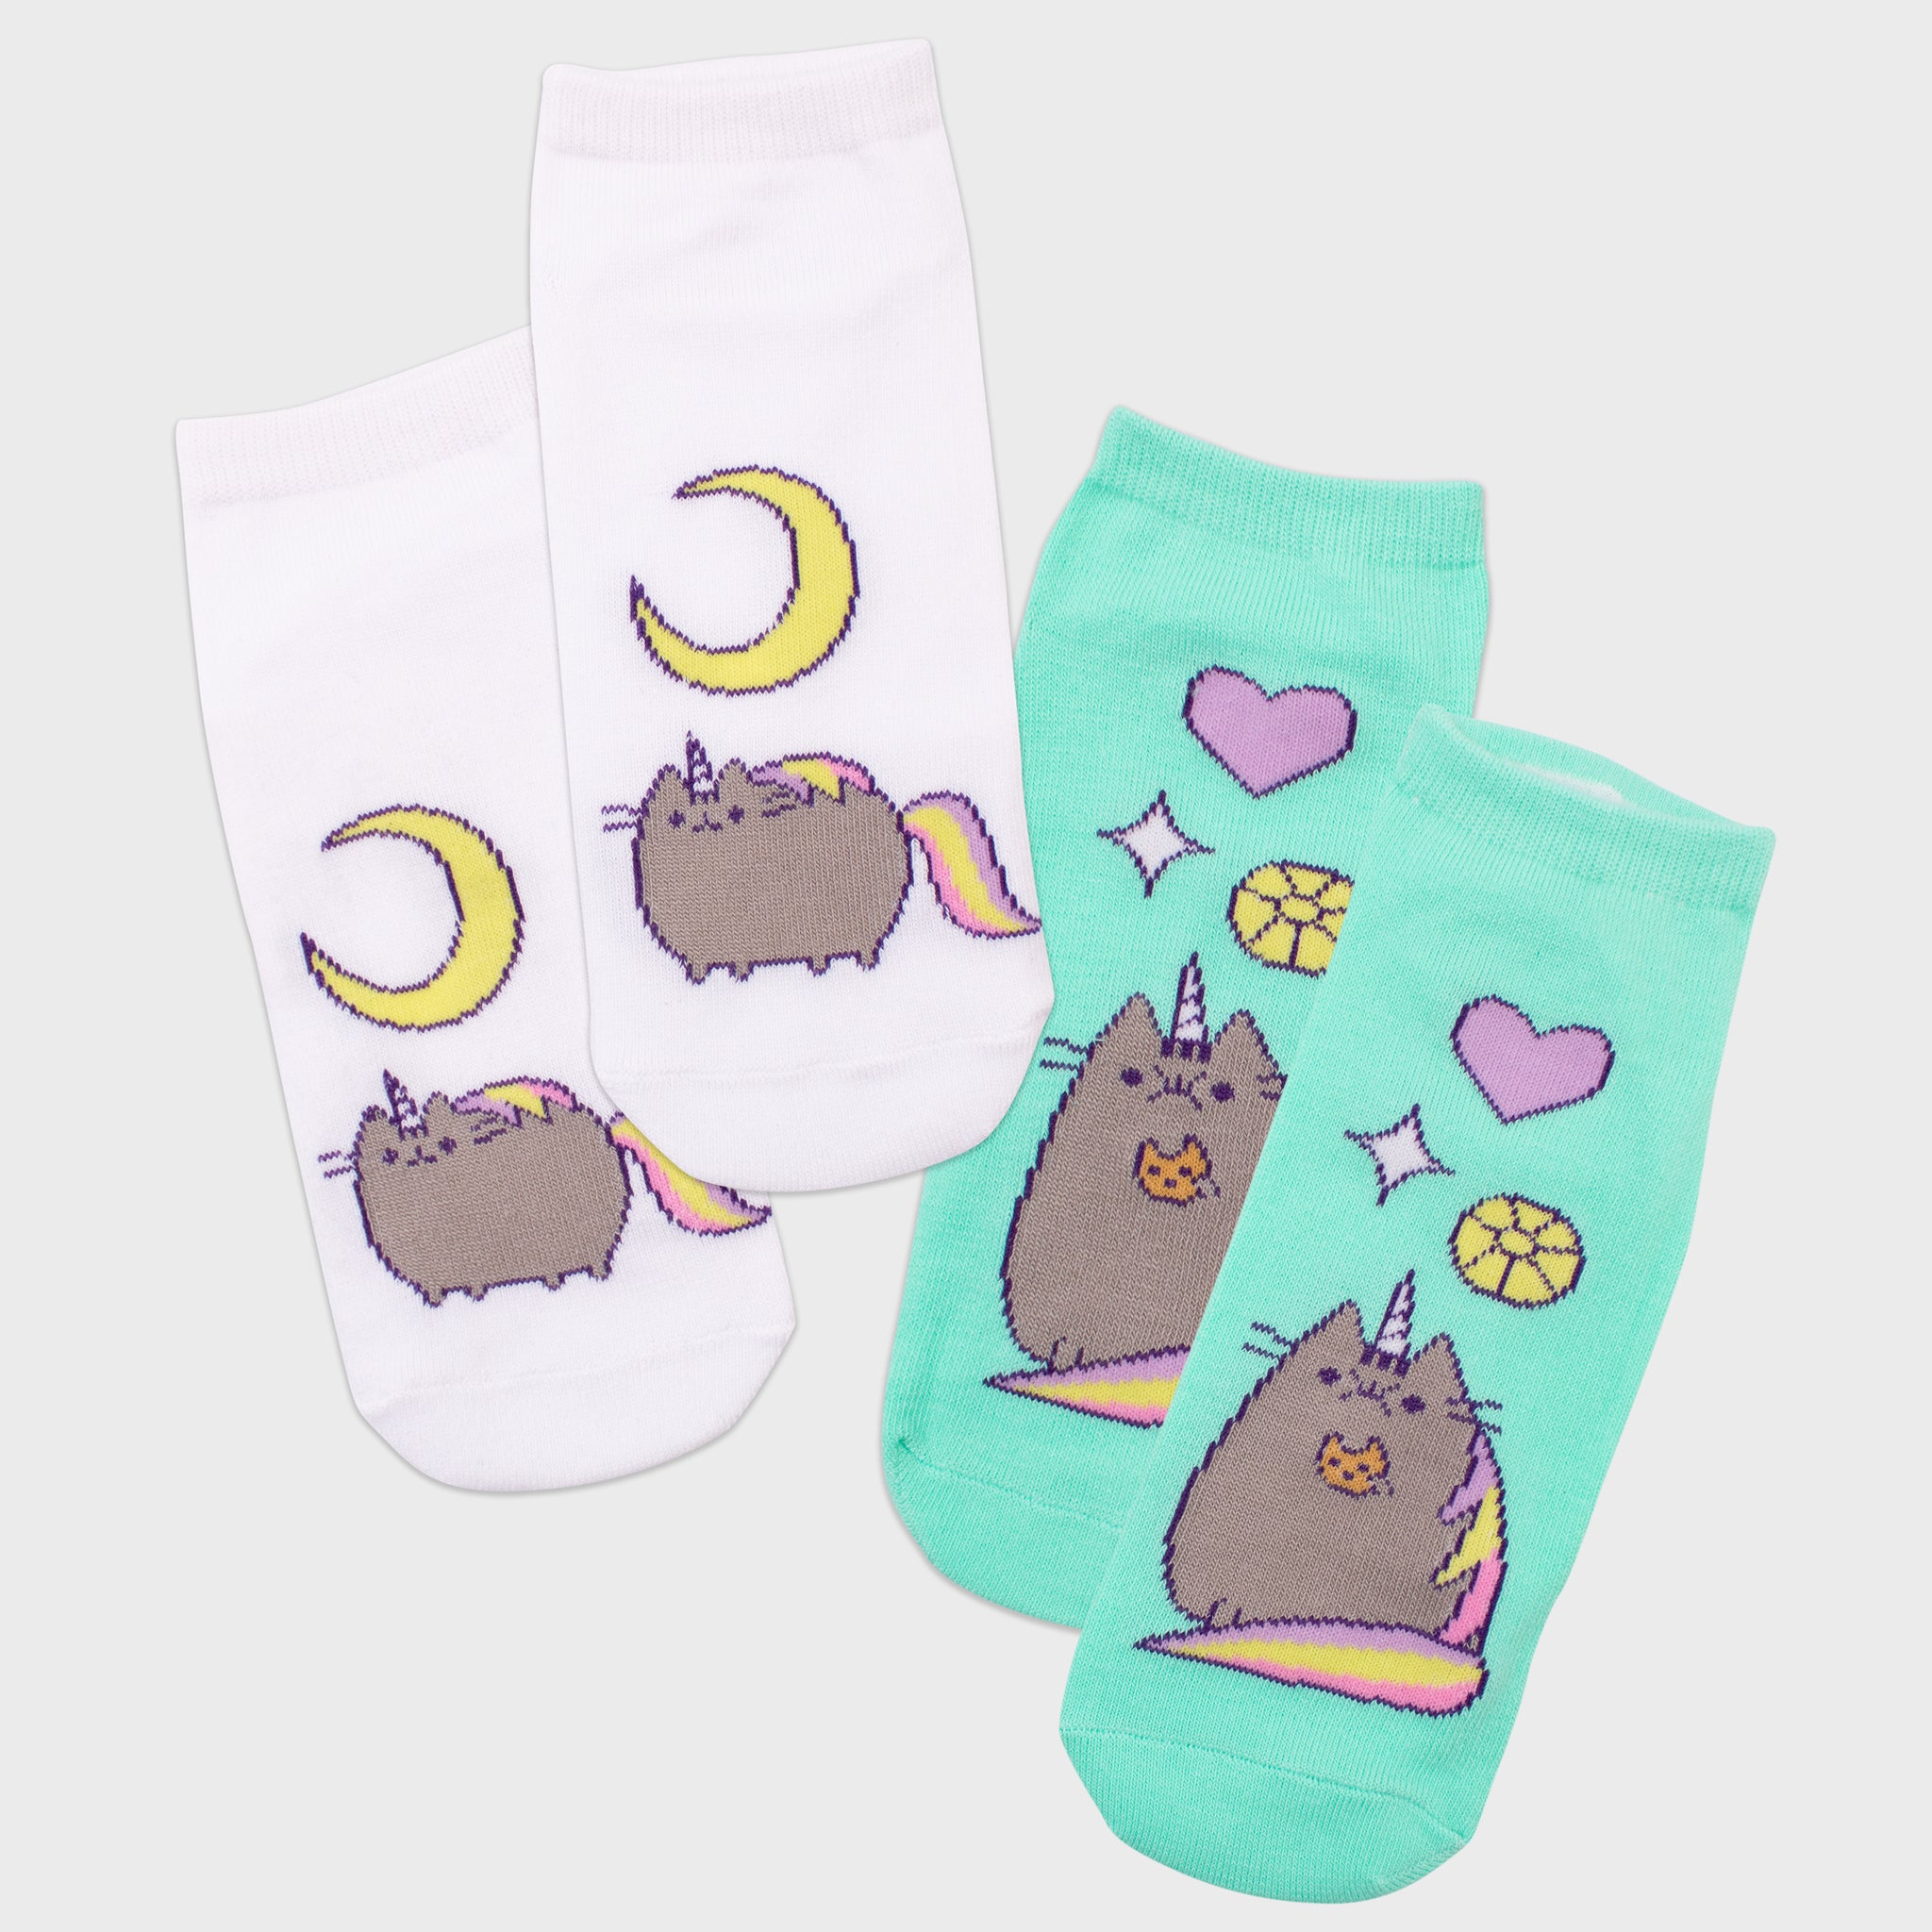 pusheen socks 2 pack pair unicorn pusheenicorn pink teal apparel accessory cute cat culturefly